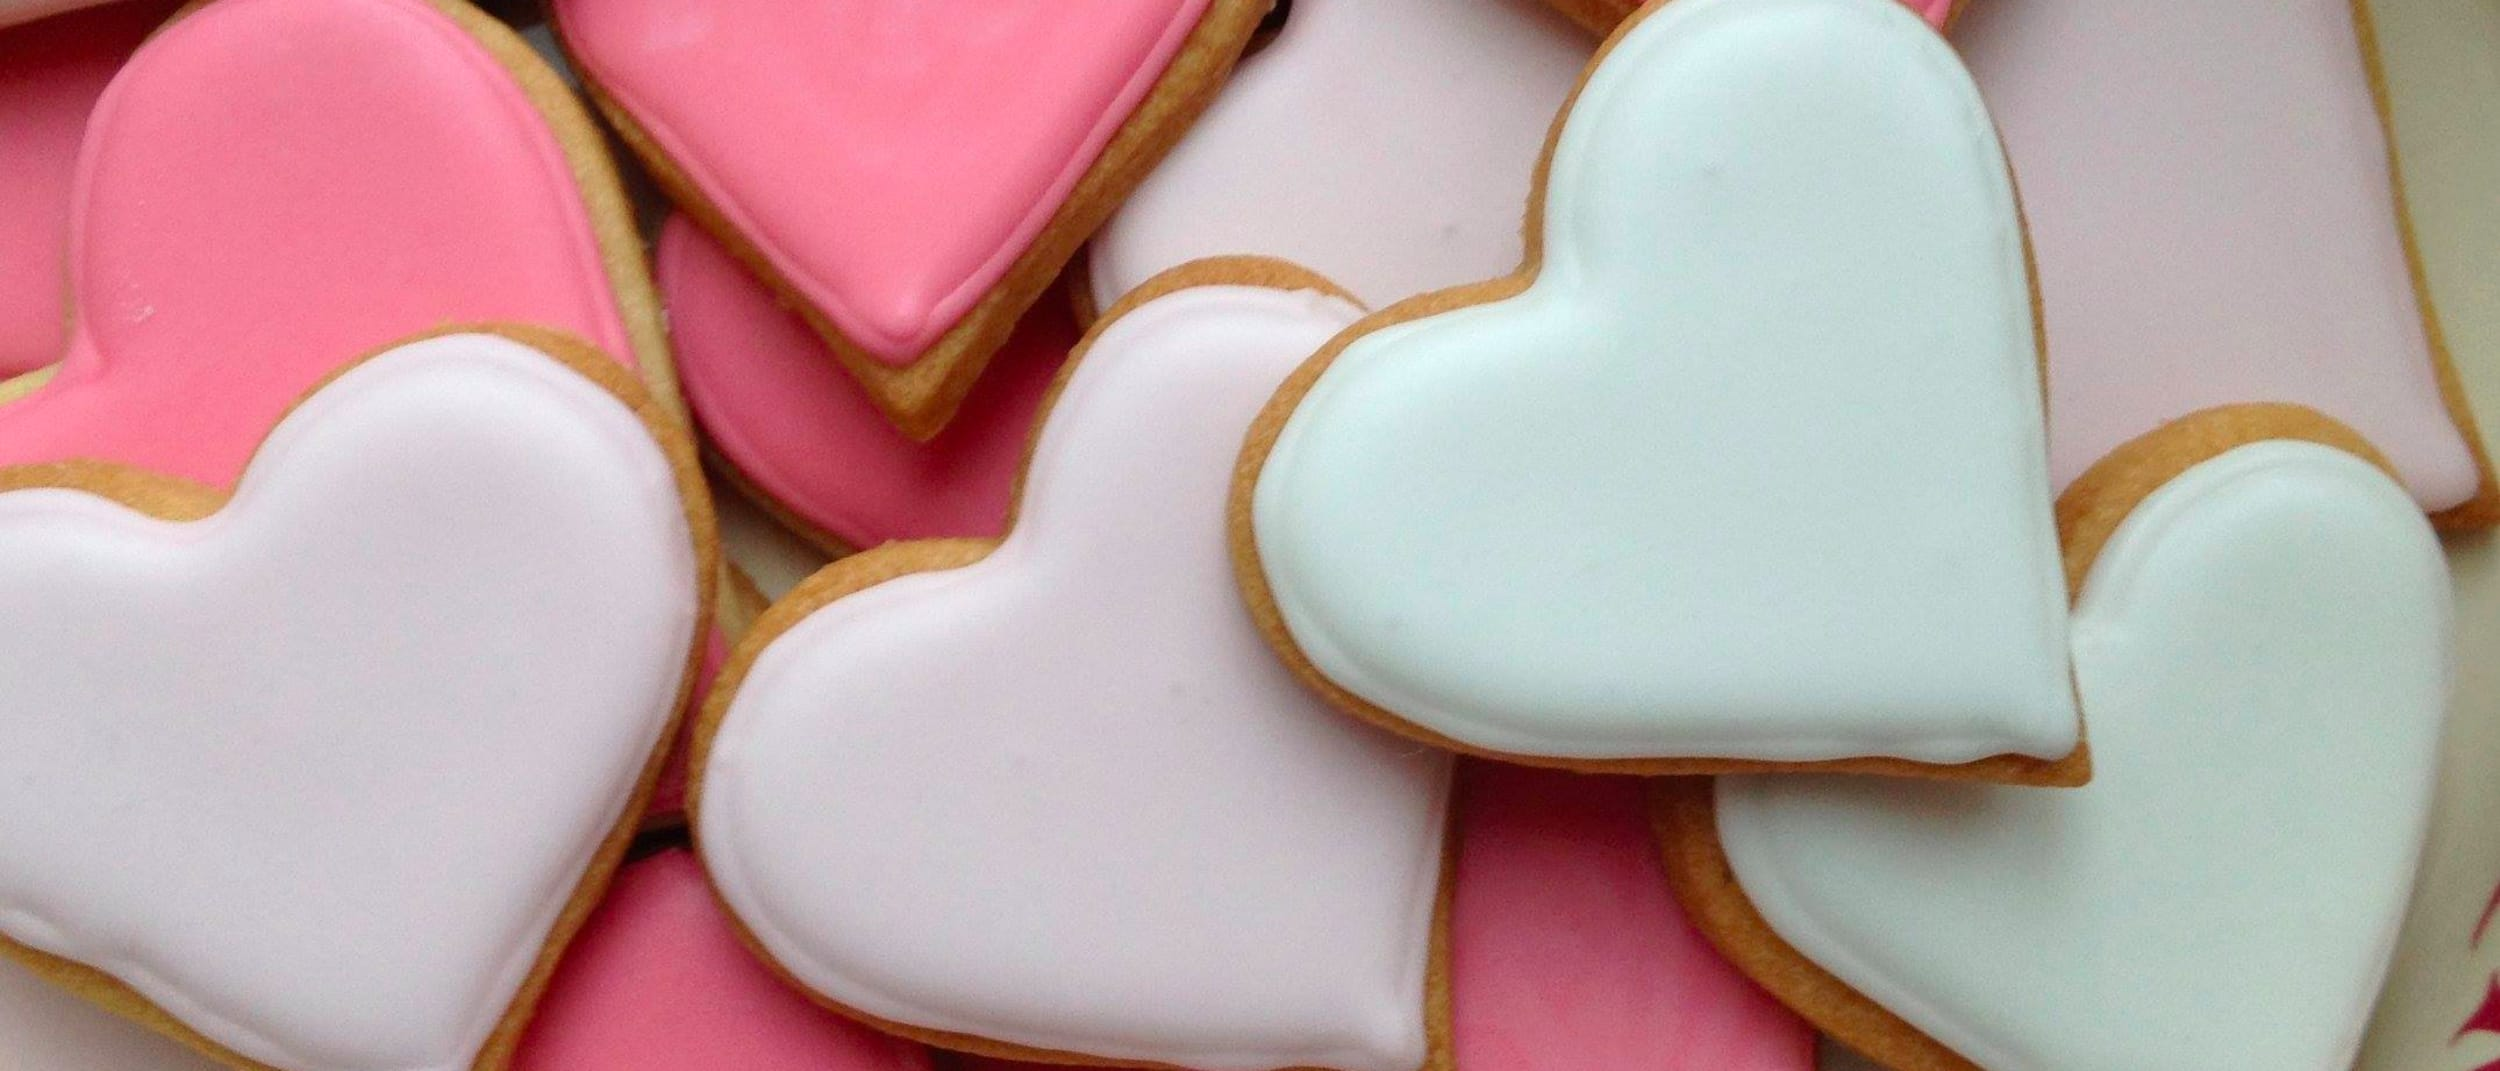 With love from Westfield - enjoy a Valentine's Day cookie on us!